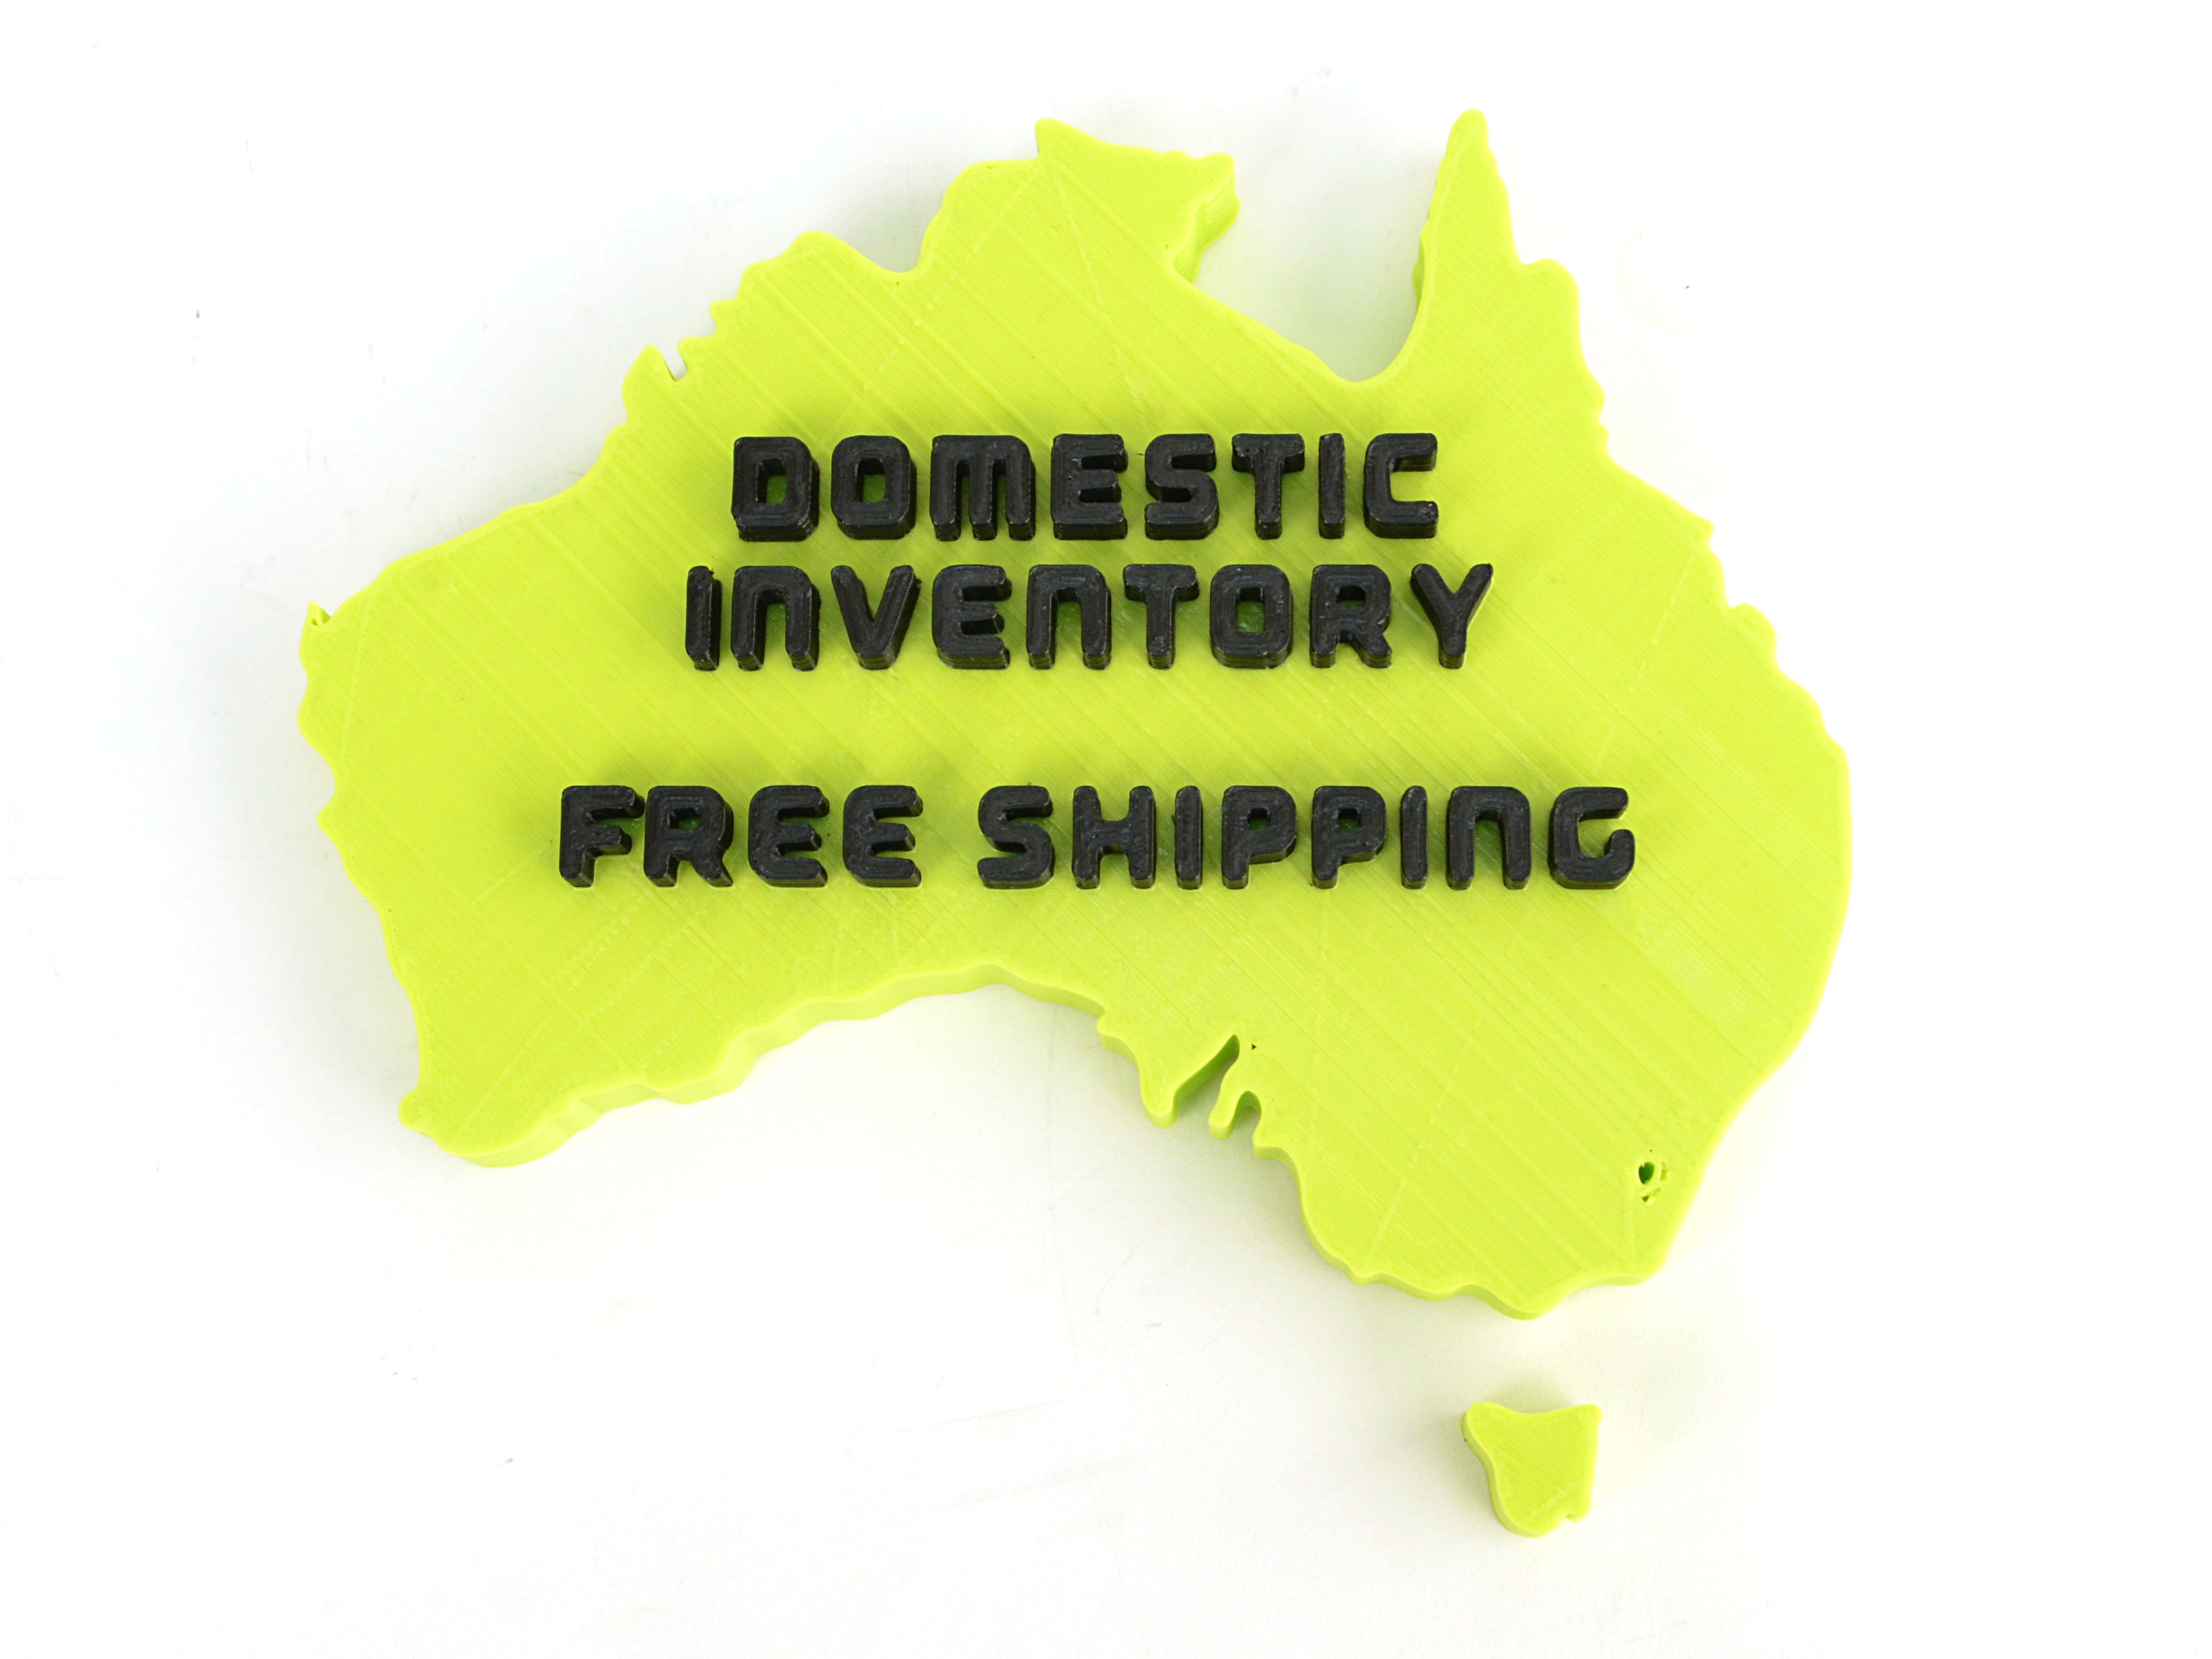 lulzbot products expand to australia with free shipping